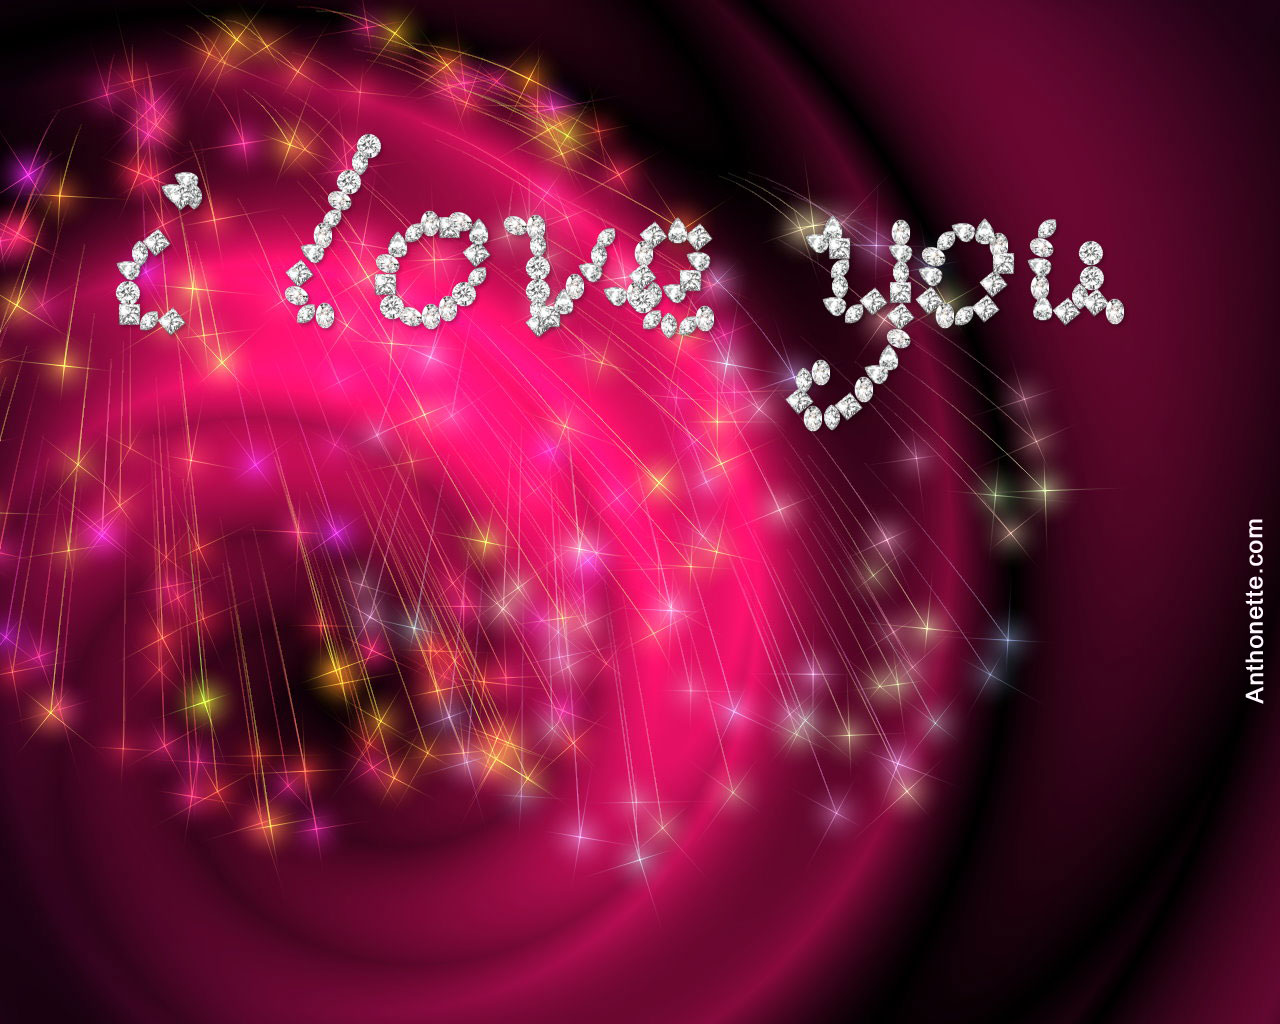 Wallpapers Hd Love You Wallpapers Hd Love You Wallpapers Hd 1280x1024